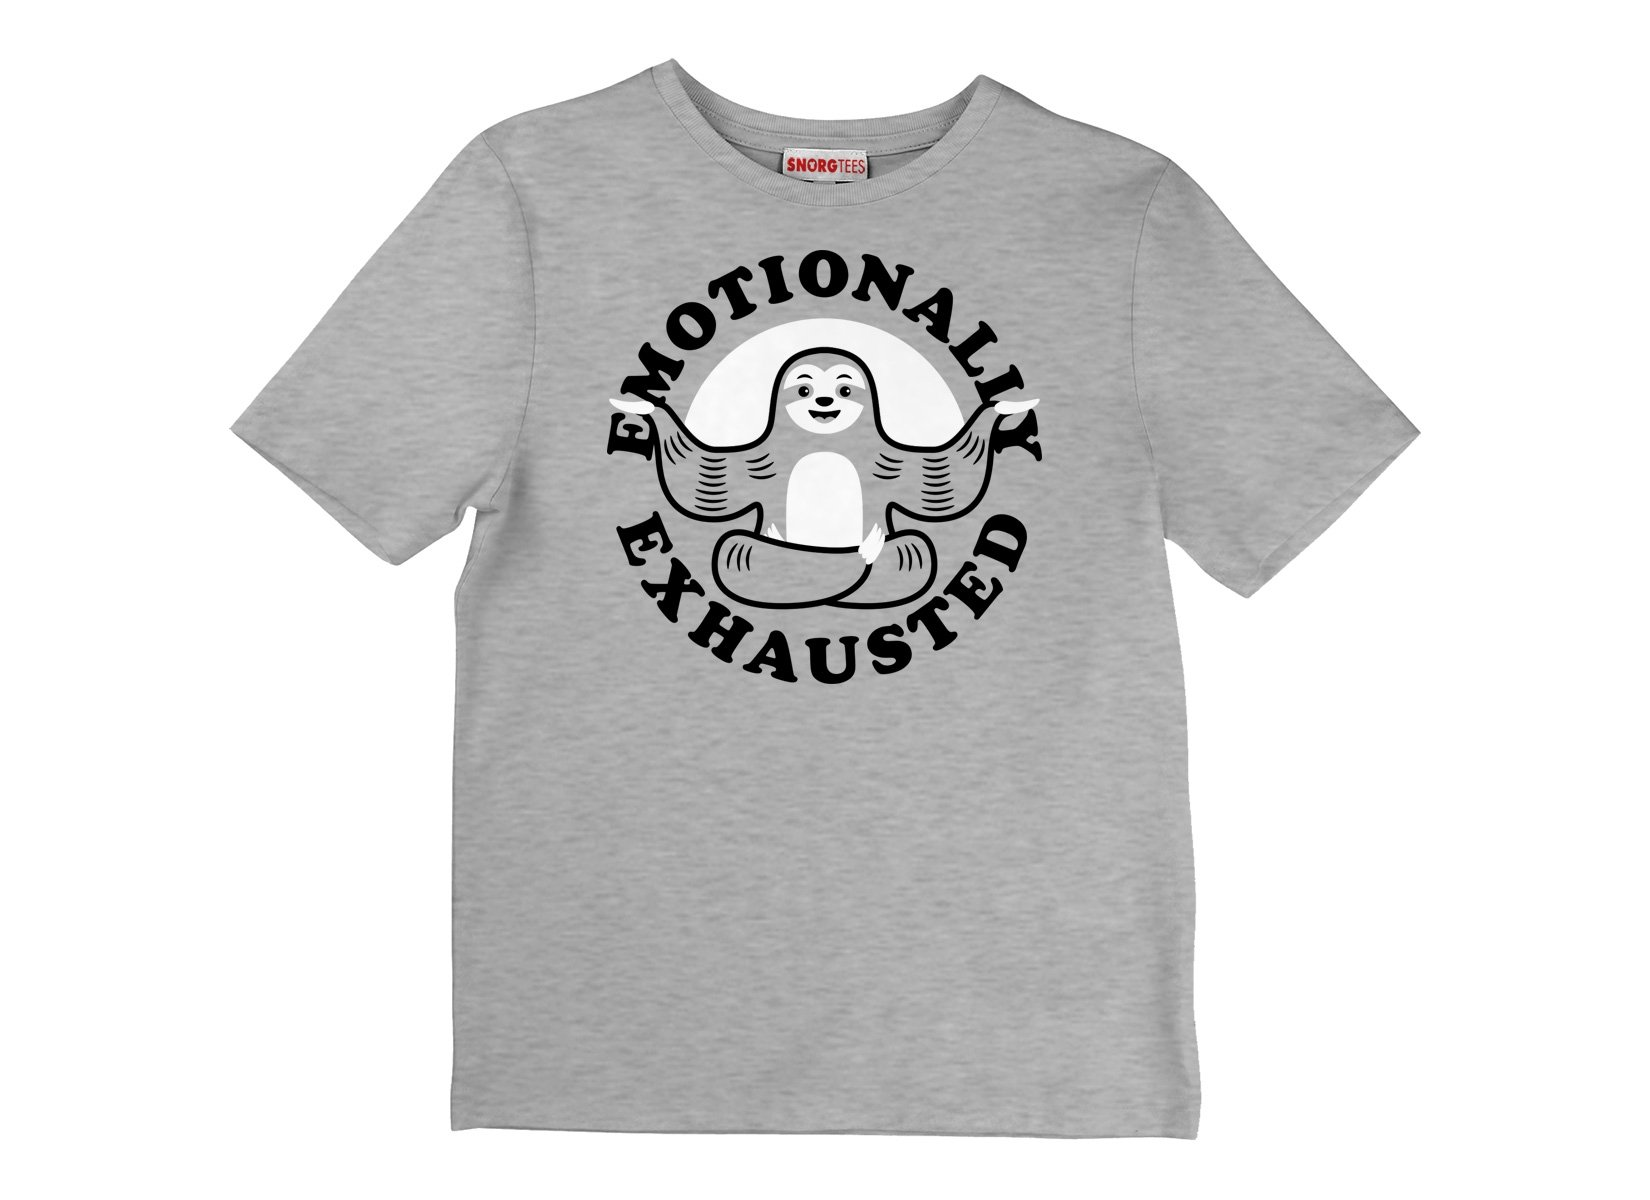 Emotionally Exhausted on Kids T-Shirt